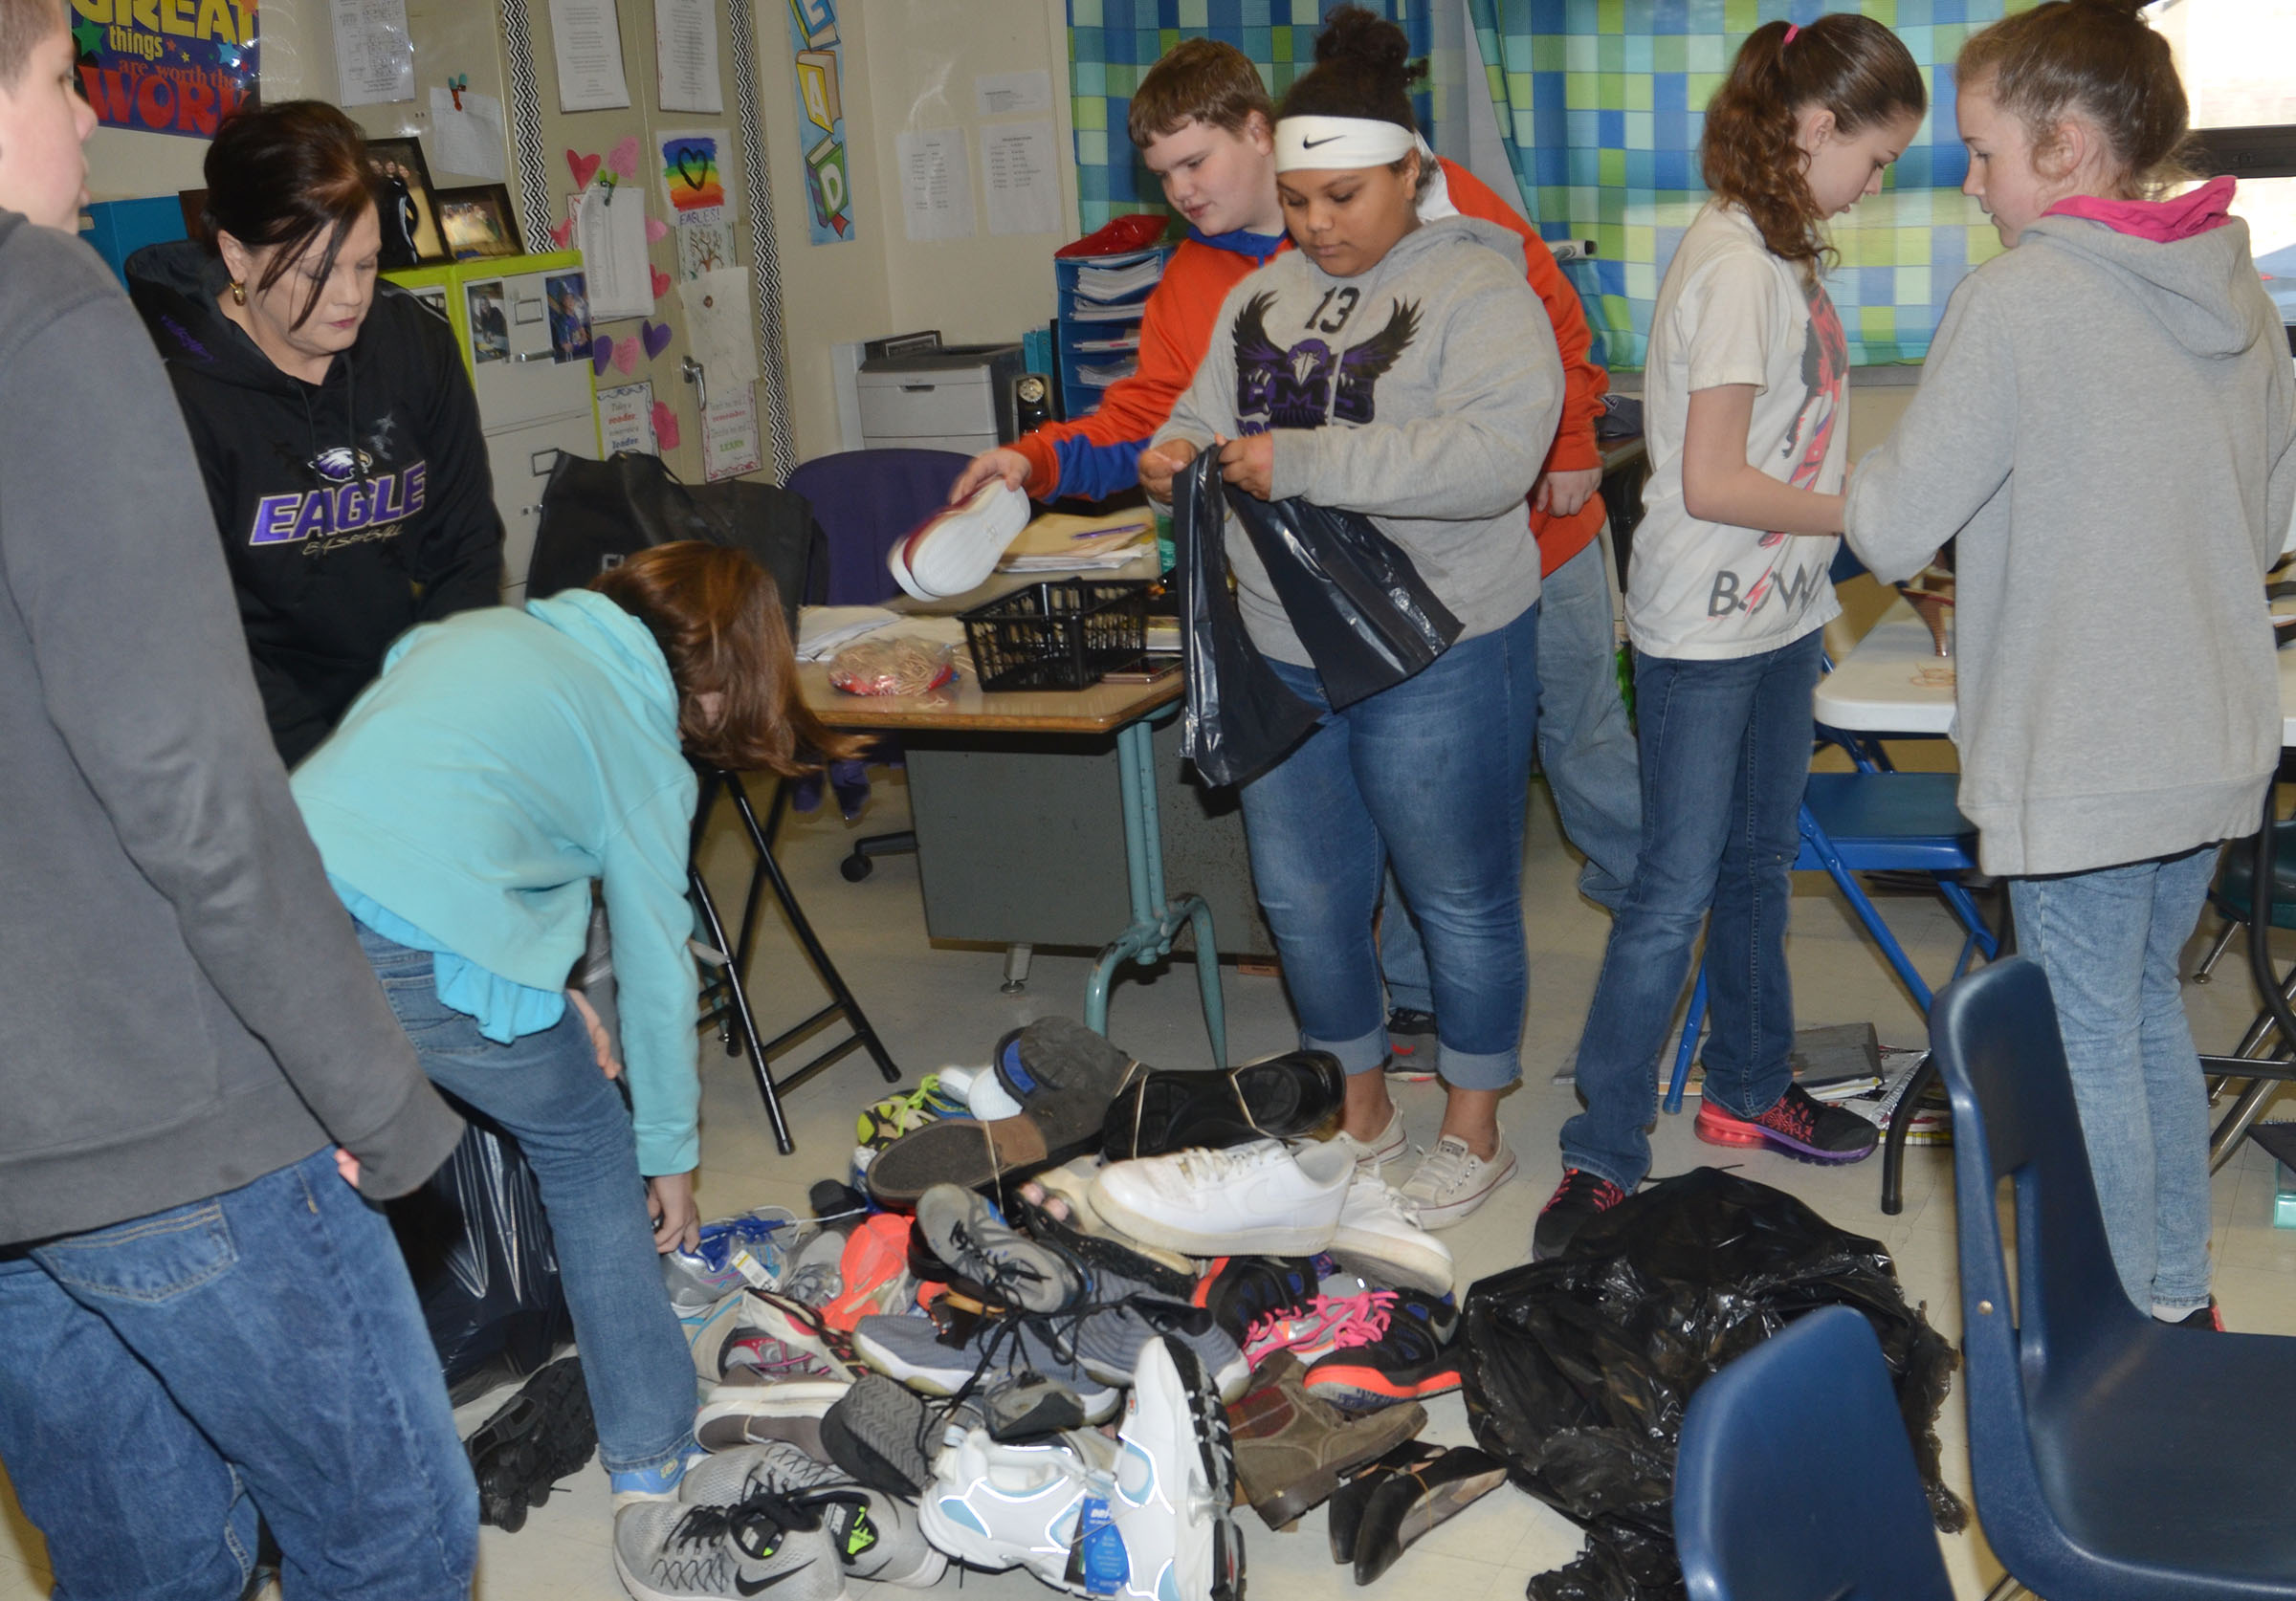 CMS sixth-grader teacher Lisa Kearney, at left, helps students sort through shoes.